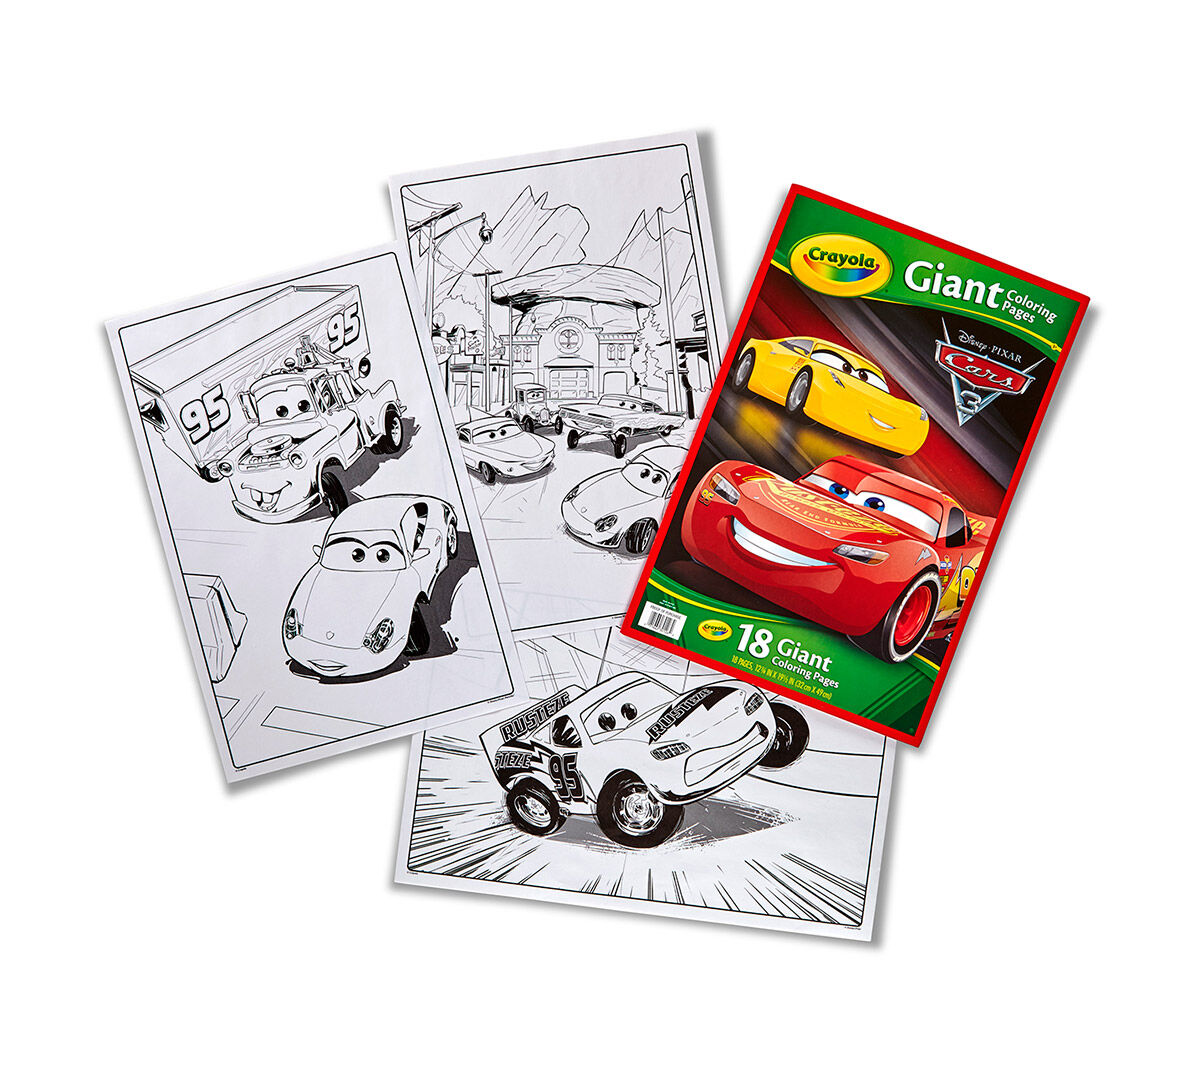 Crayola Giant Coloring Pages, Cars 3, Oversized Coloring Pages, Art ...